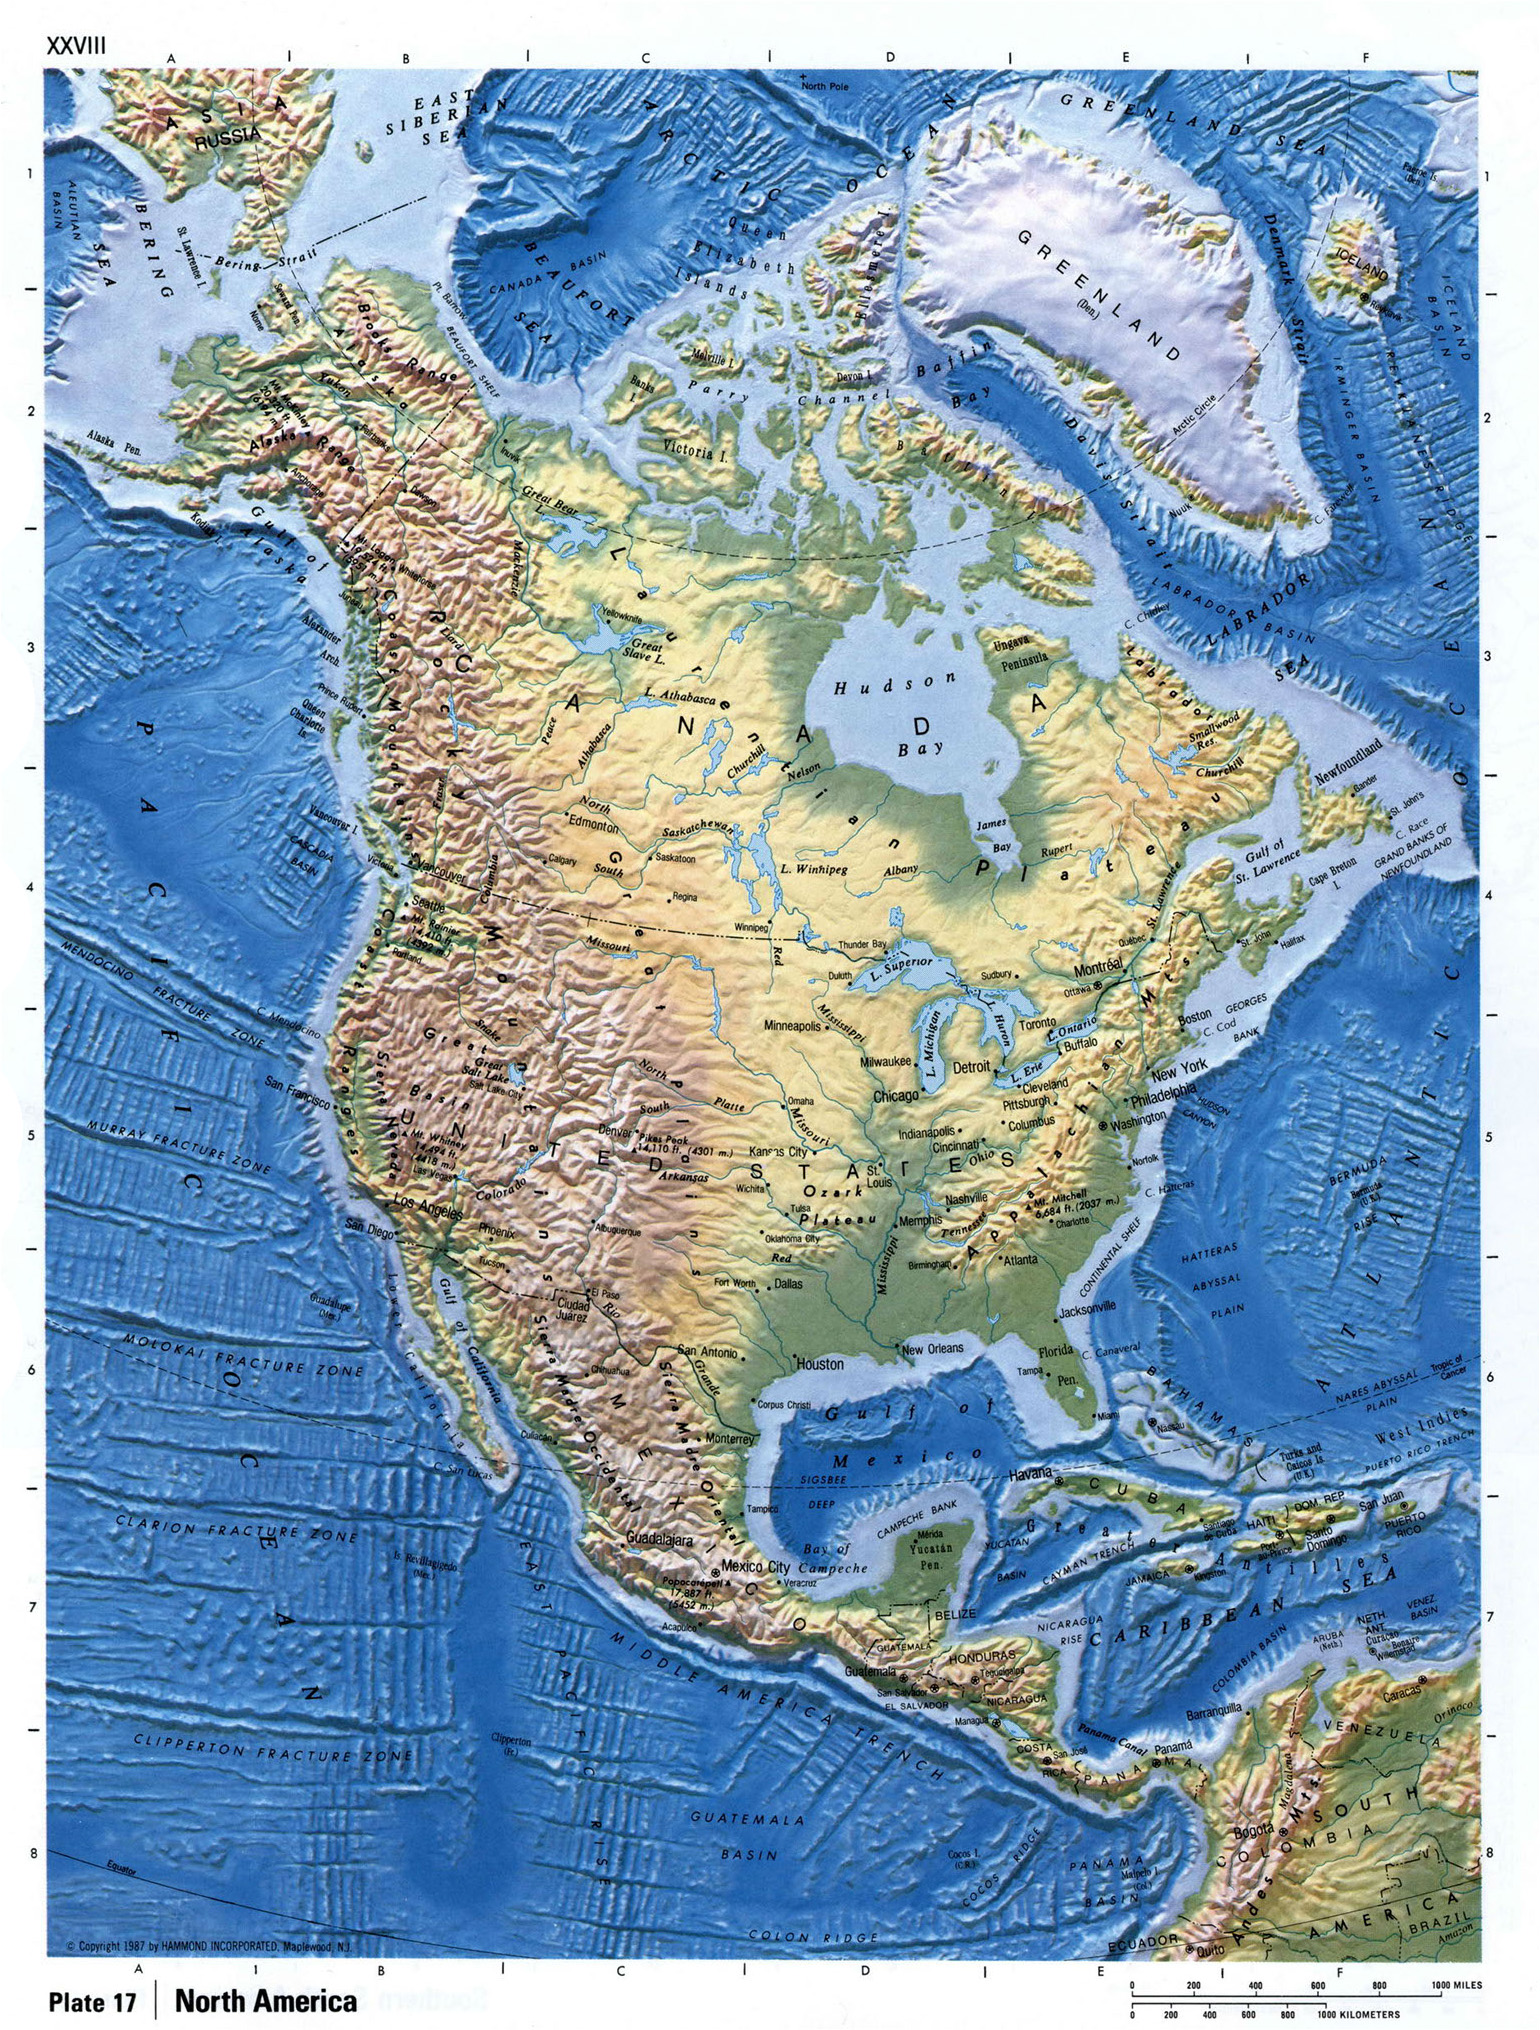 Maps Of North America And North American Countries Political - North america relief map